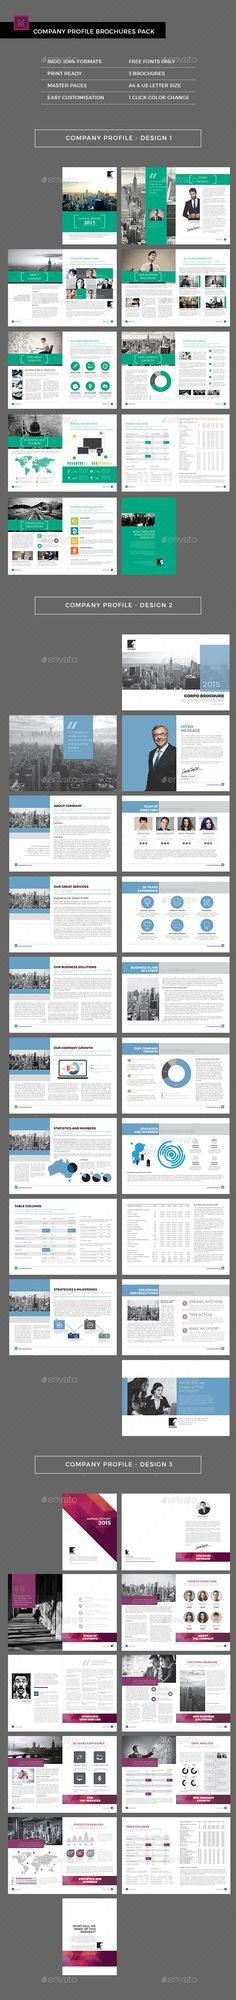 The business plan template indesign indd download here http company profile brochures pack 3 in 1 template indesign indd download toneelgroepblik Choice Image